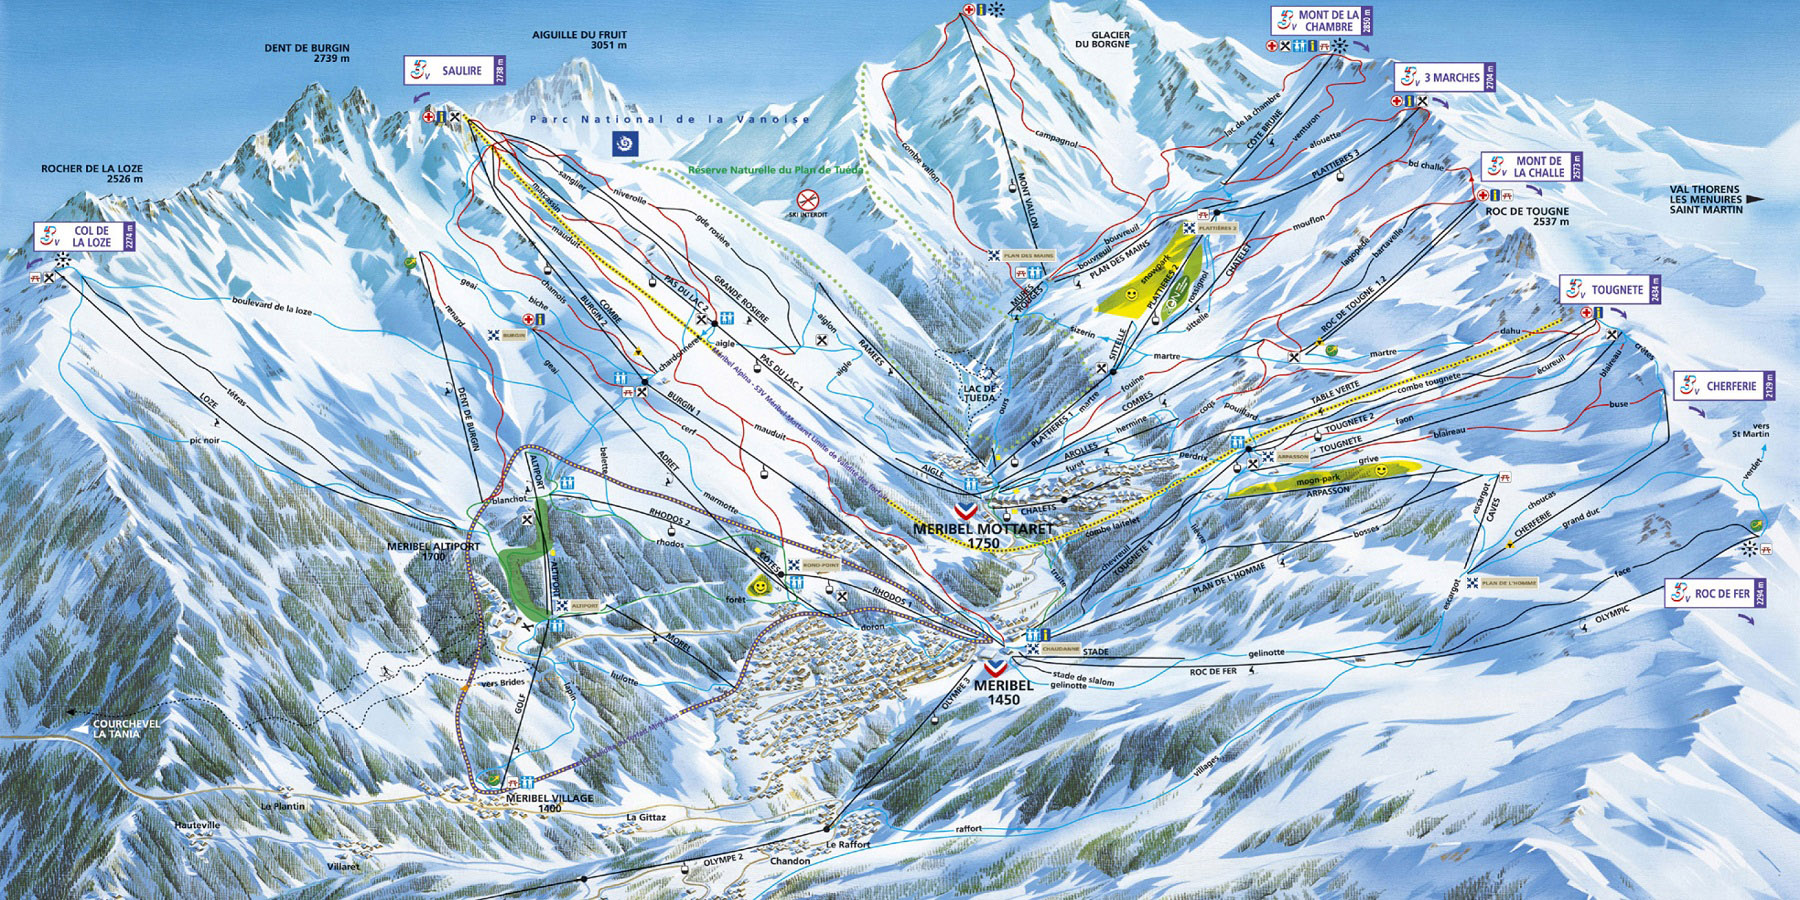 Схема трасс в Мерибеле (Ski map Meribel)